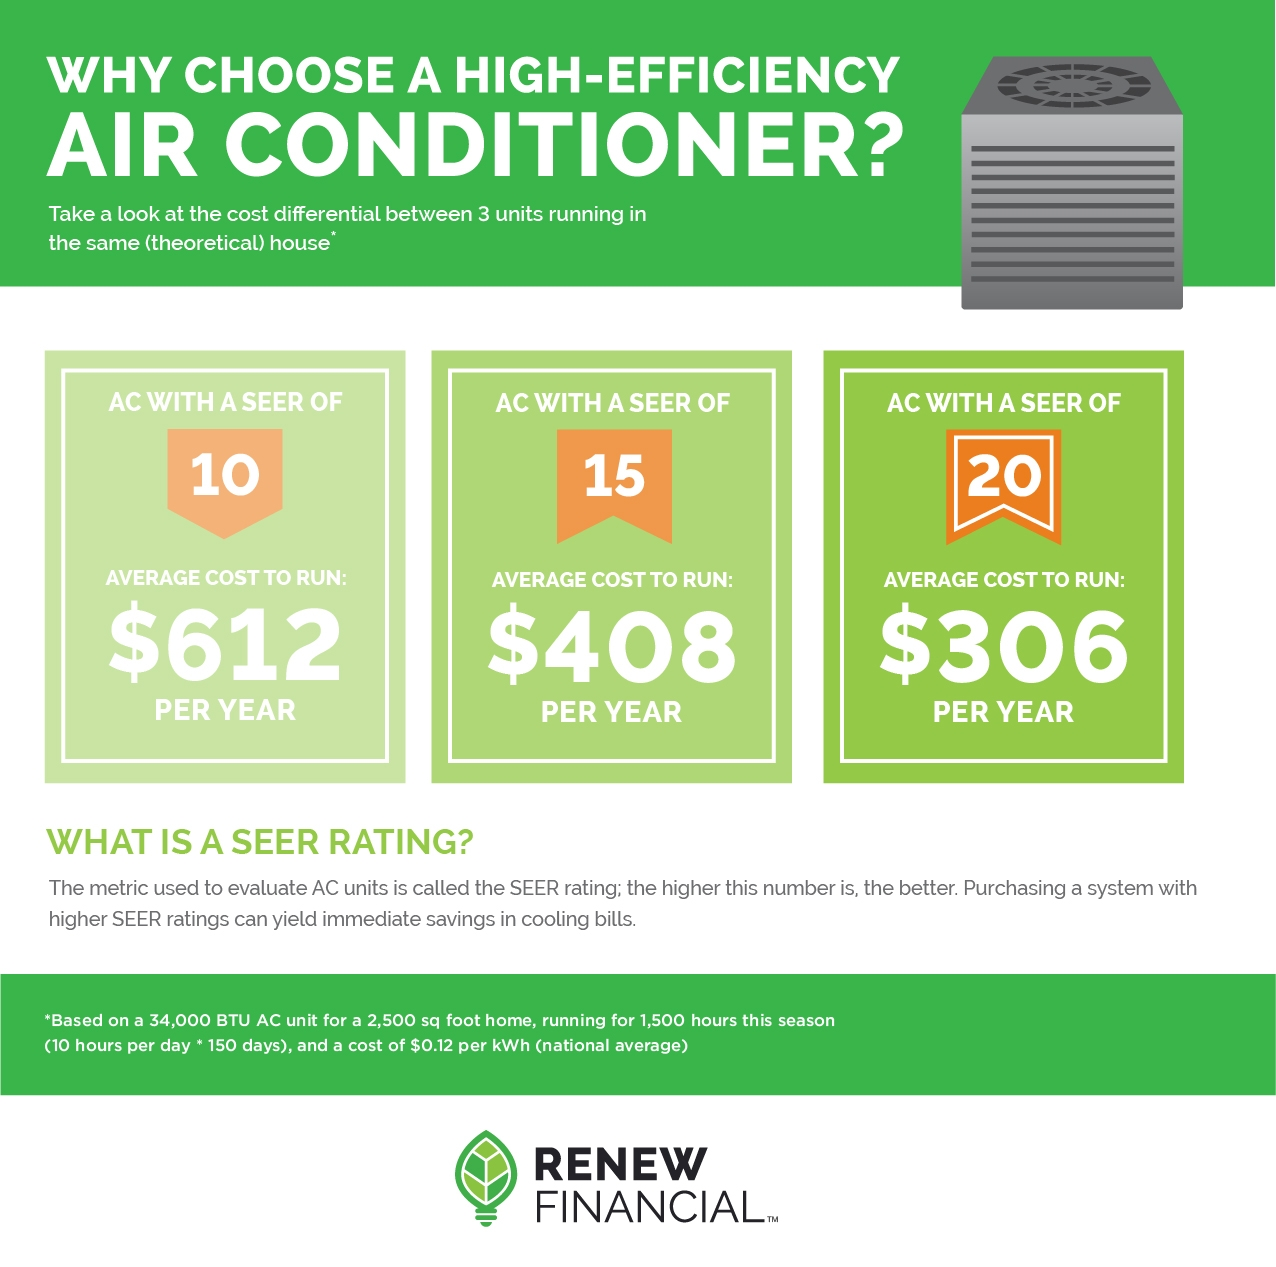 Finance a High Efficiency AC with Renew Financial!